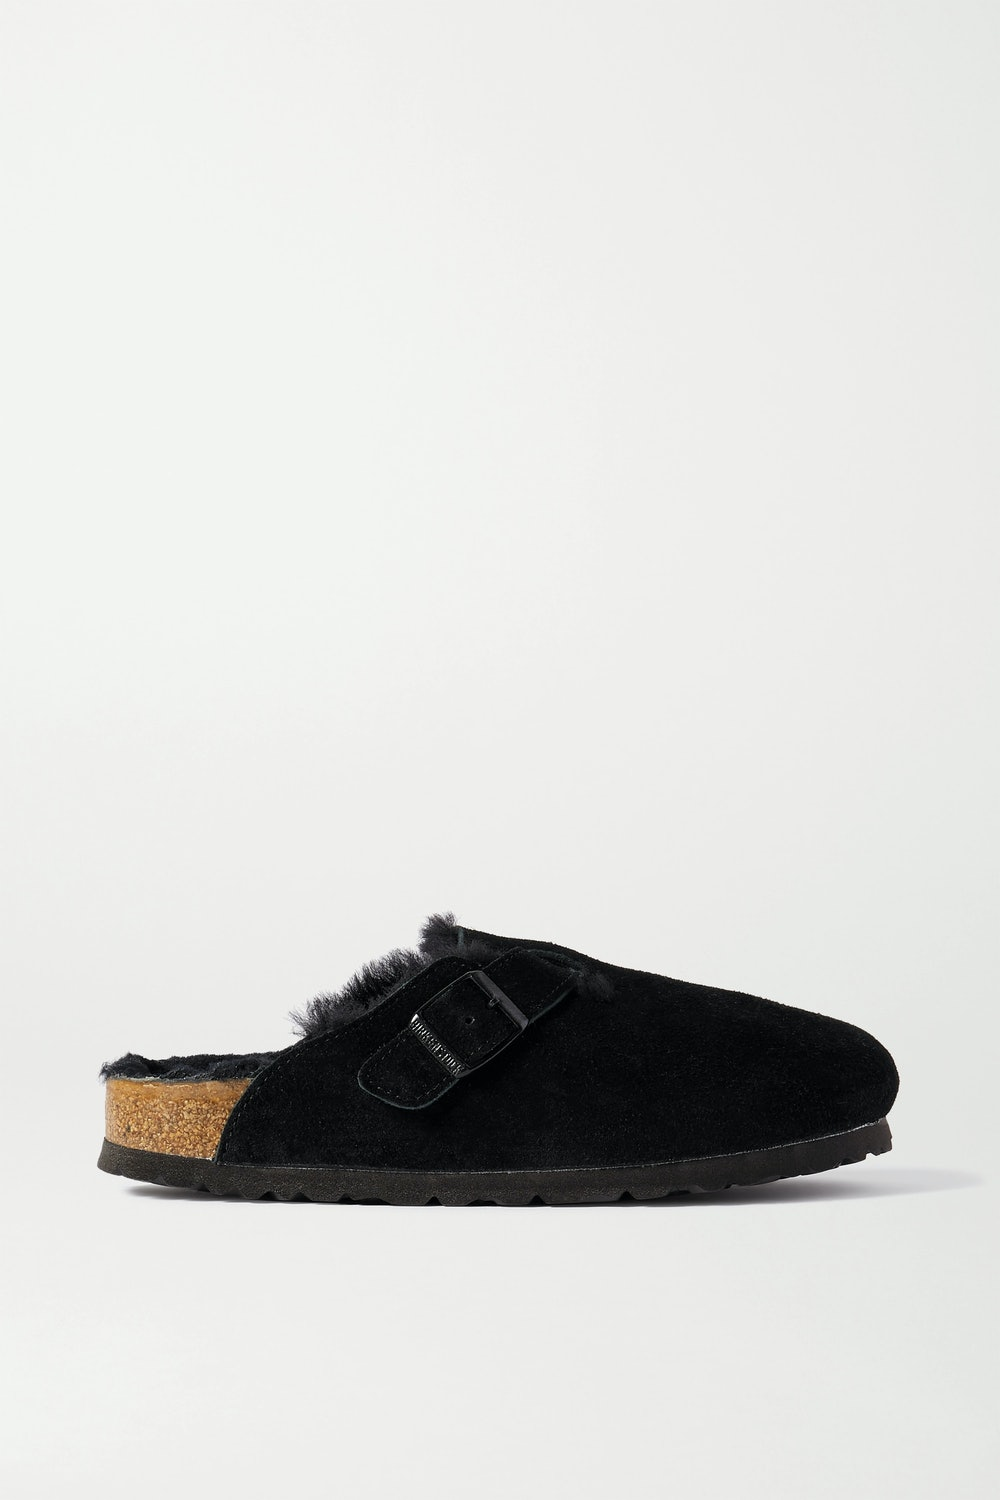 Boston shearling-lined suede slippers